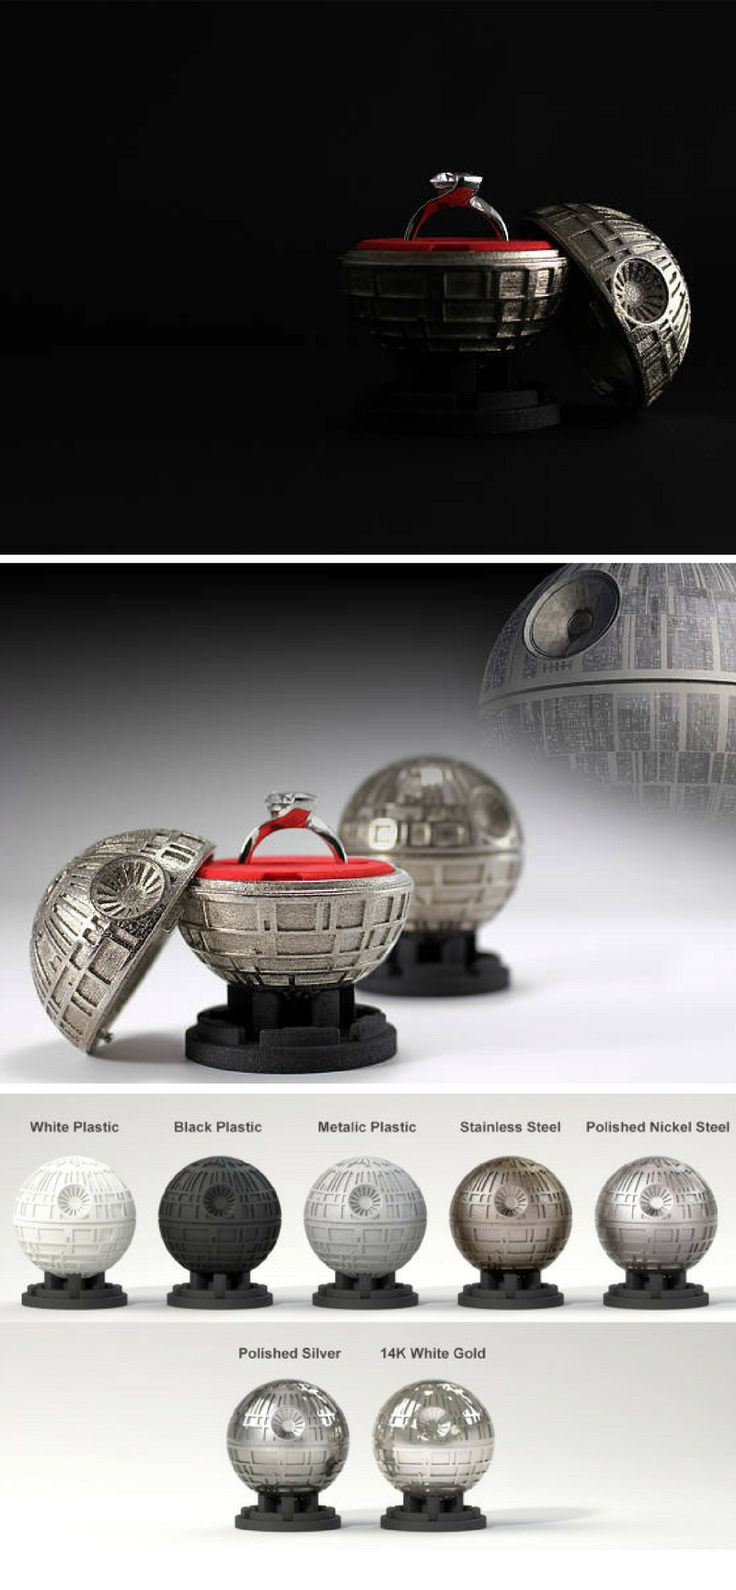 Every Star Wars fan should propose with this Death Star wedding ring holder. It's awesome! #ringboxes #starwars  #geek #proposal #deathstar #wedding #commissionlink